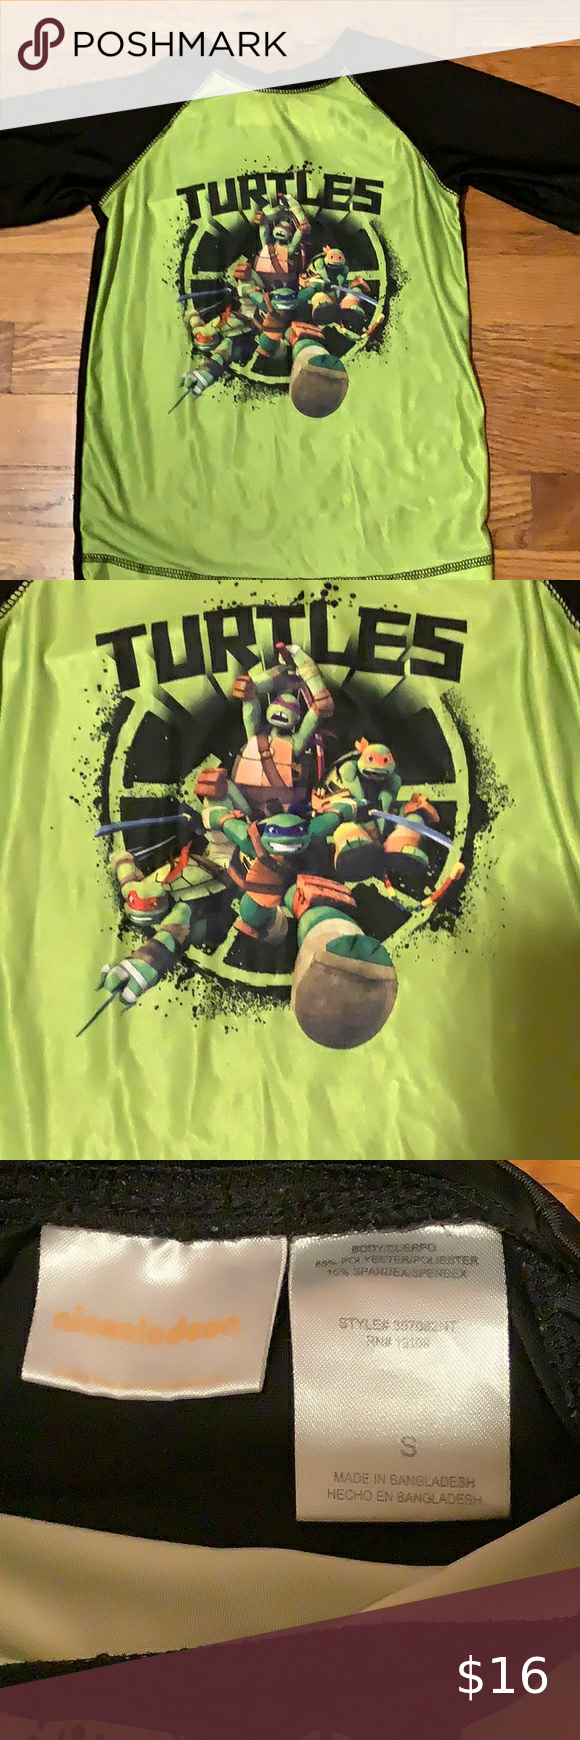 Boys ninja turtle shirt sleeve